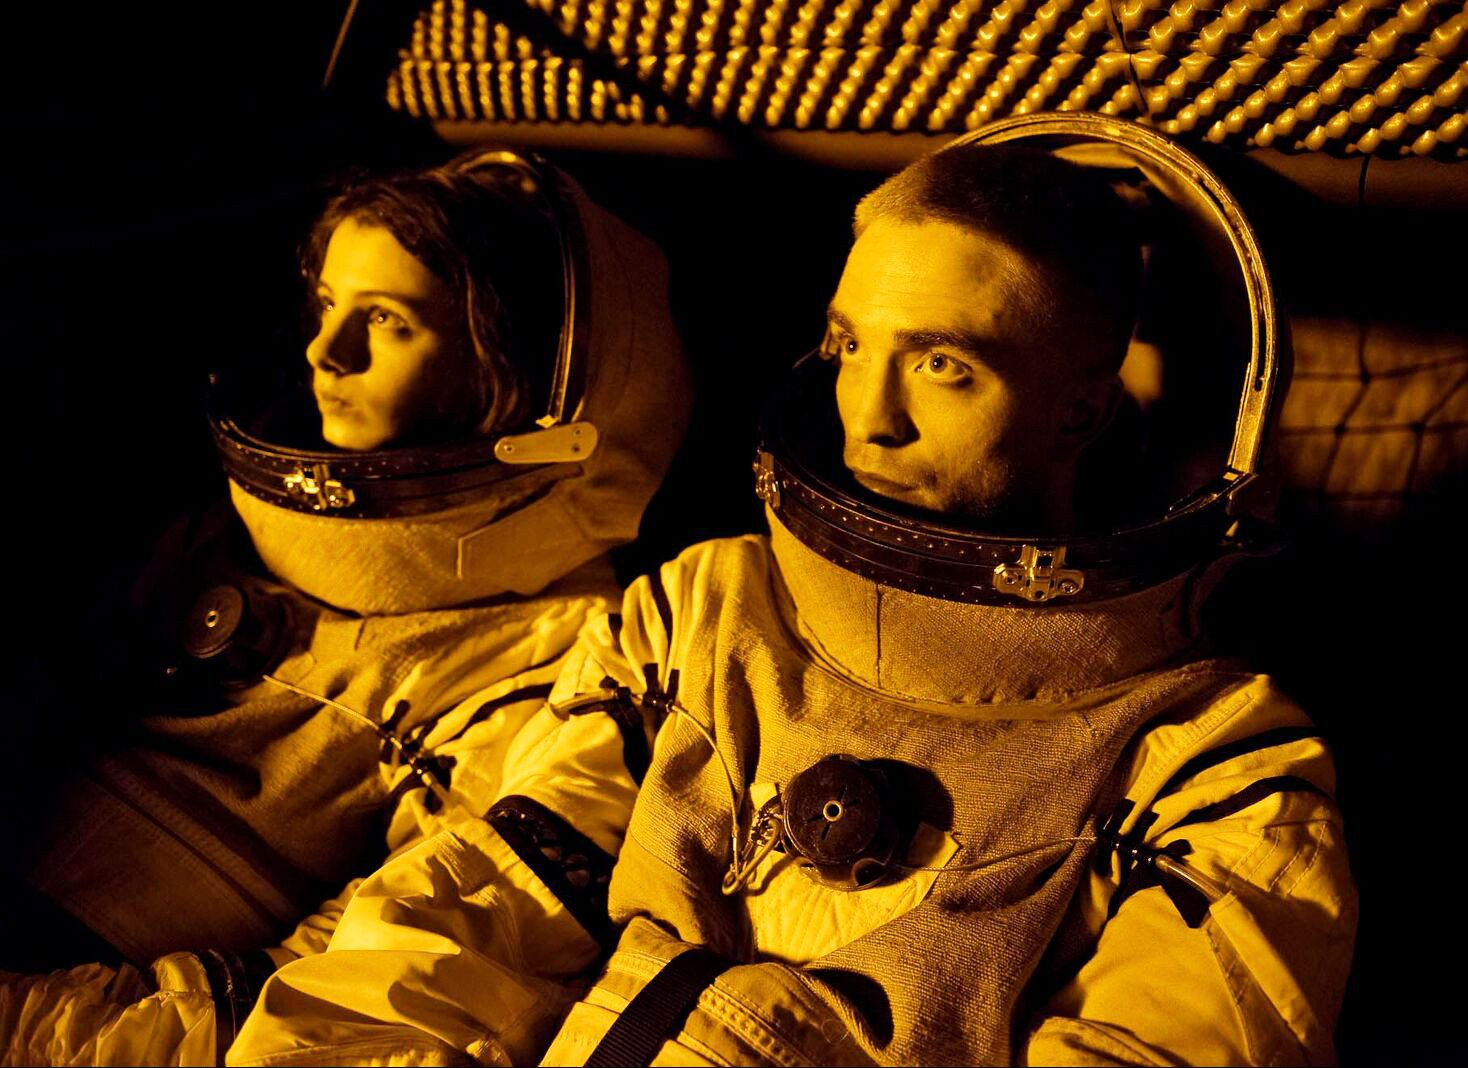 high life a24 movie claire denis robert pattinson